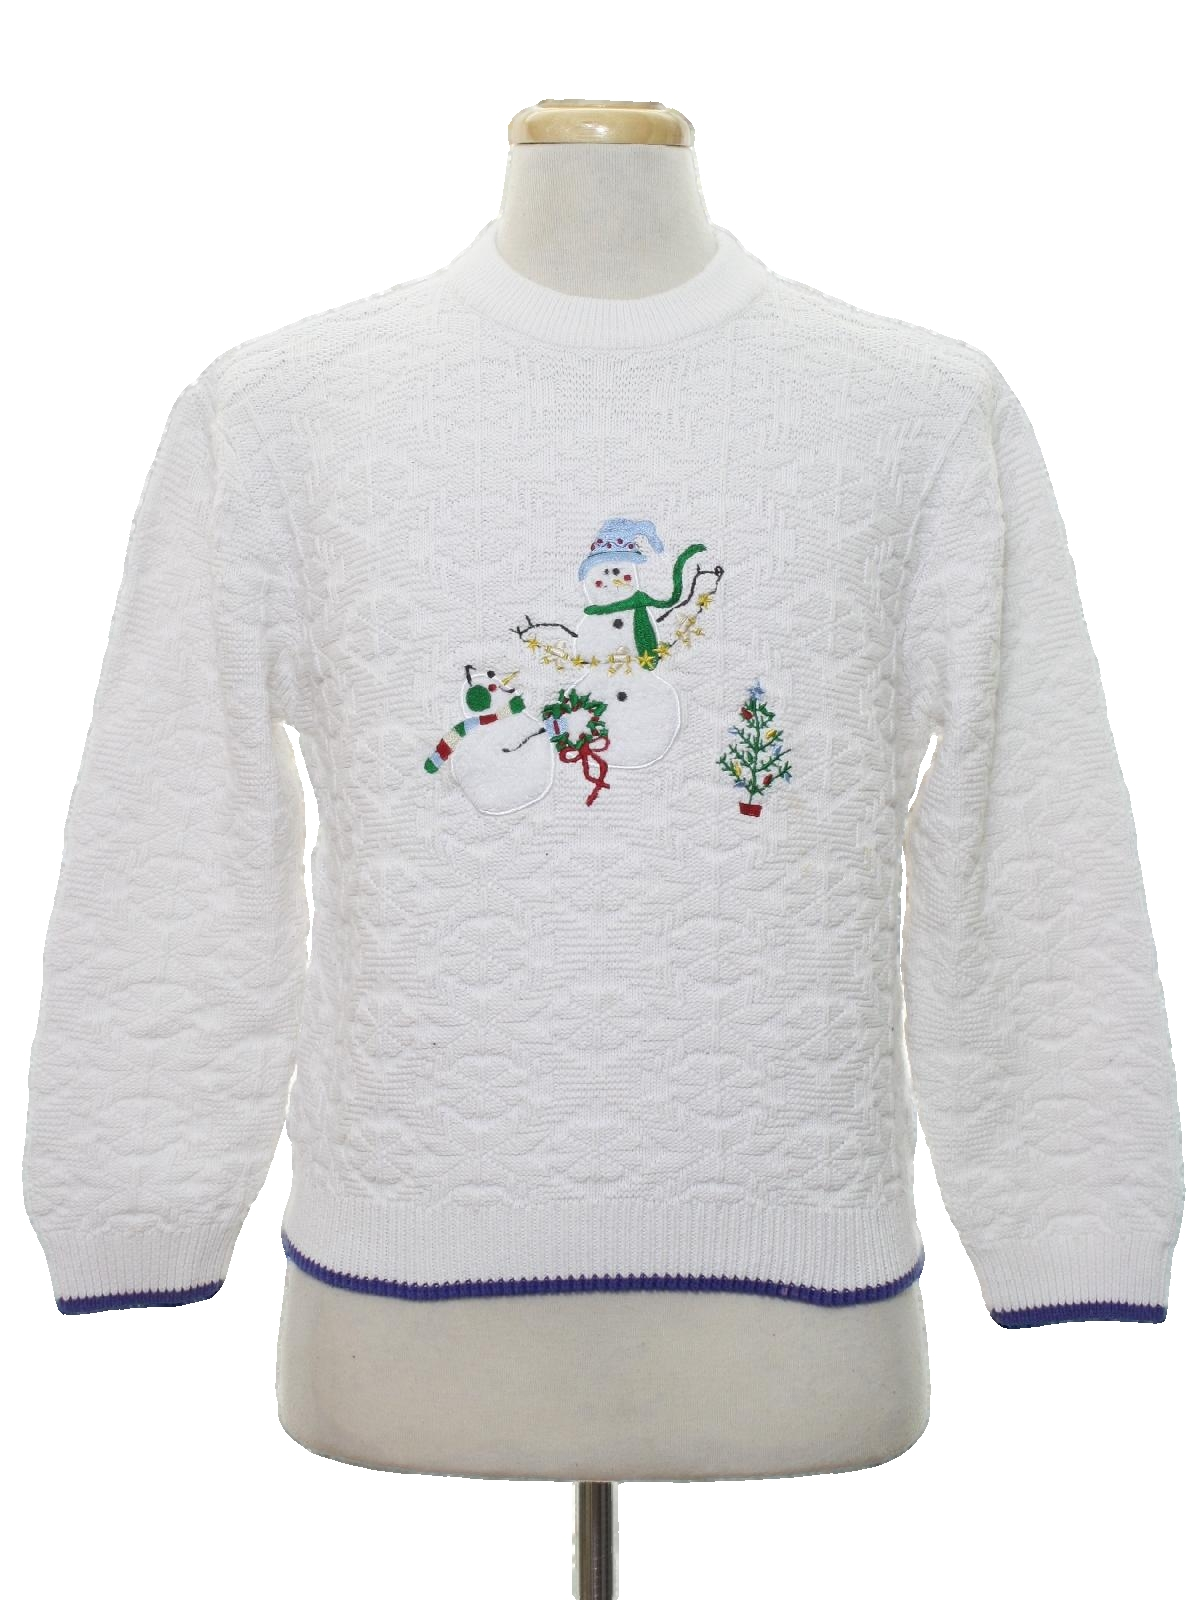 90s Christmas Background.1990 S Cabelas Unisex Ladies Or Boys Ugly Christmas Vintage Sweater